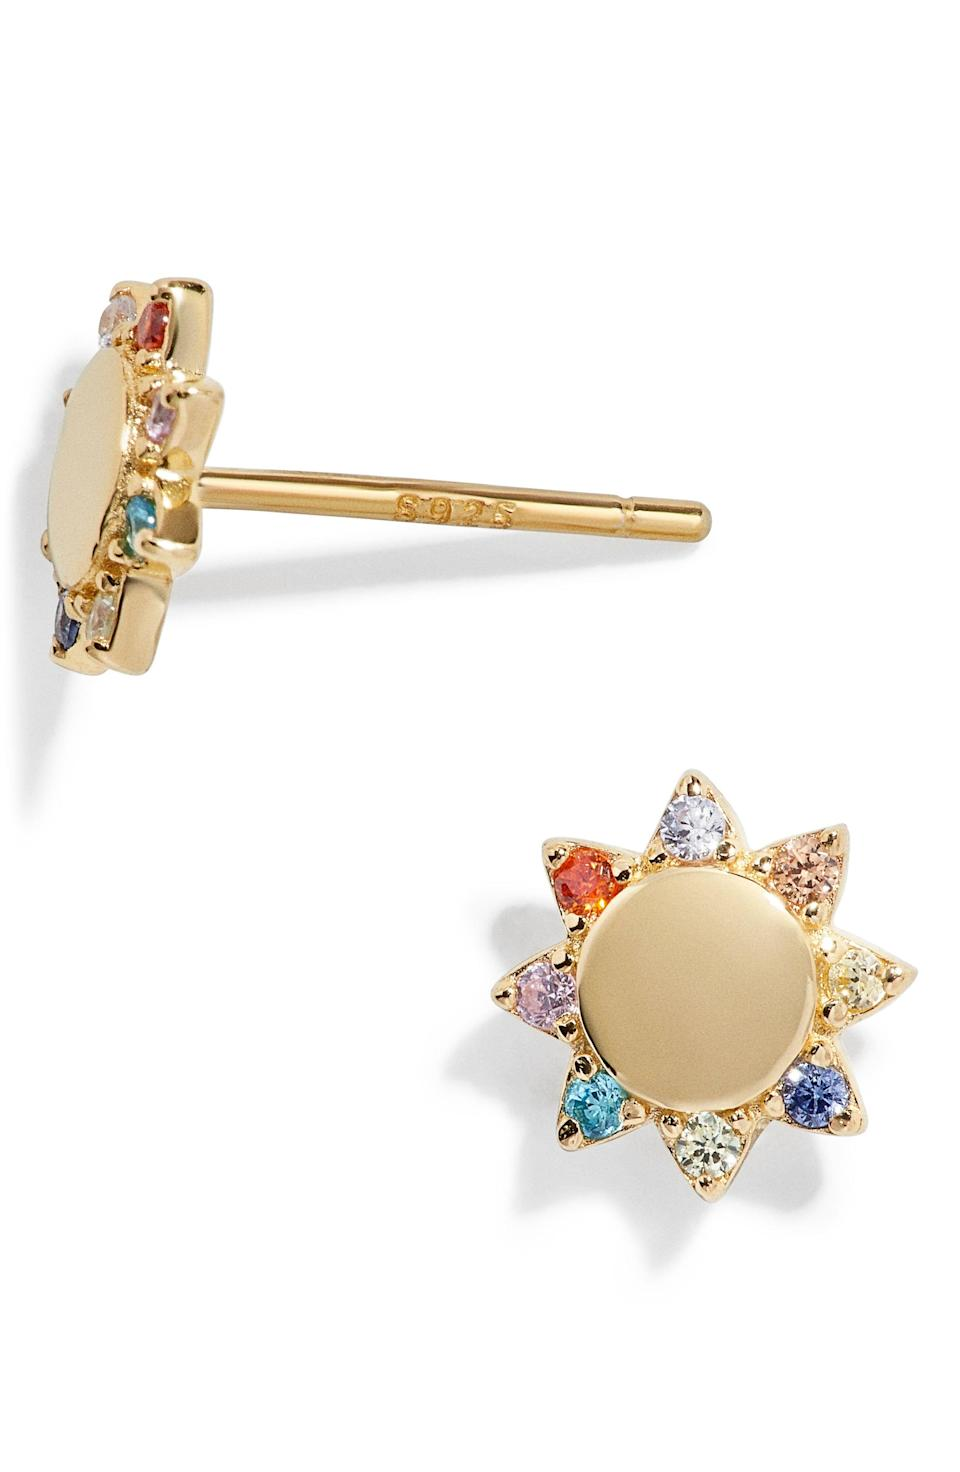 """<p><strong>BaubleBar</strong></p><p>nordstrom.com</p><p><strong>$30.40</strong></p><p><a href=""""https://go.redirectingat.com?id=74968X1596630&url=https%3A%2F%2Fwww.nordstrom.com%2Fs%2Fbaublebar-fiore-18k-gold-vermeil-flower-stud-earrings%2F5775740&sref=https%3A%2F%2Fwww.oprahmag.com%2Fstyle%2Fg32948480%2Fbest-earrings-for-sensitive-ears%2F"""" rel=""""nofollow noopener"""" target=""""_blank"""" data-ylk=""""slk:SHOP NOW"""" class=""""link rapid-noclick-resp"""">SHOP NOW</a></p><p>Gold vermeil is a base of sterling silver that is thickly coated in gold for a durable finish. These colorful floral studs will tide you over until spring blooms.</p>"""